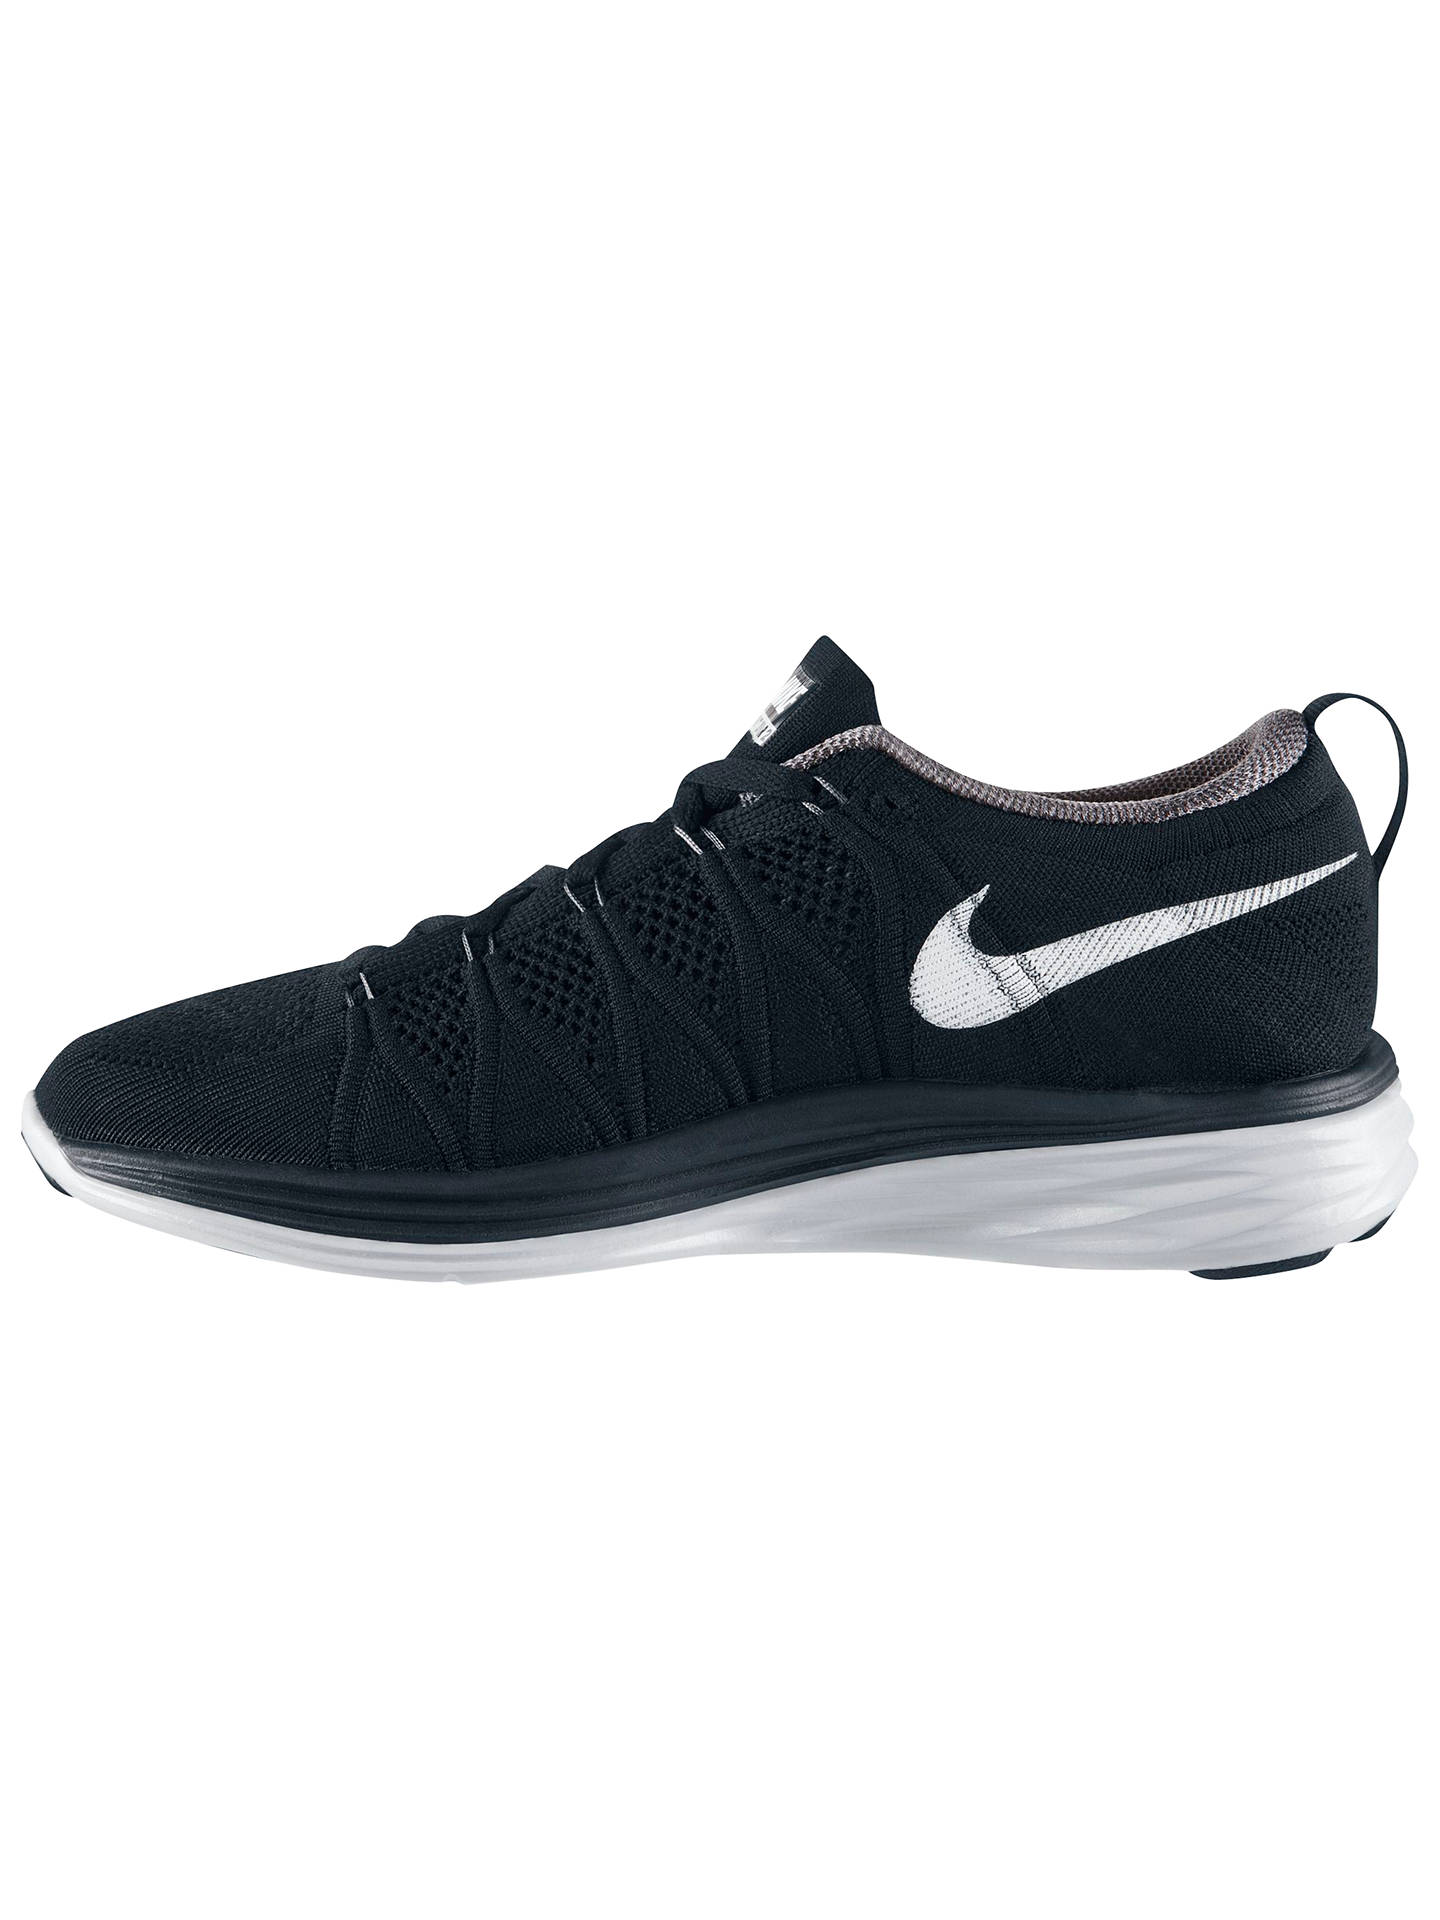 promo code bc9fa 2f1e0 ... Buy Nike Flyknit Lunar 2 Women s Running Shoes, Black White, 4.5 Online  at ...